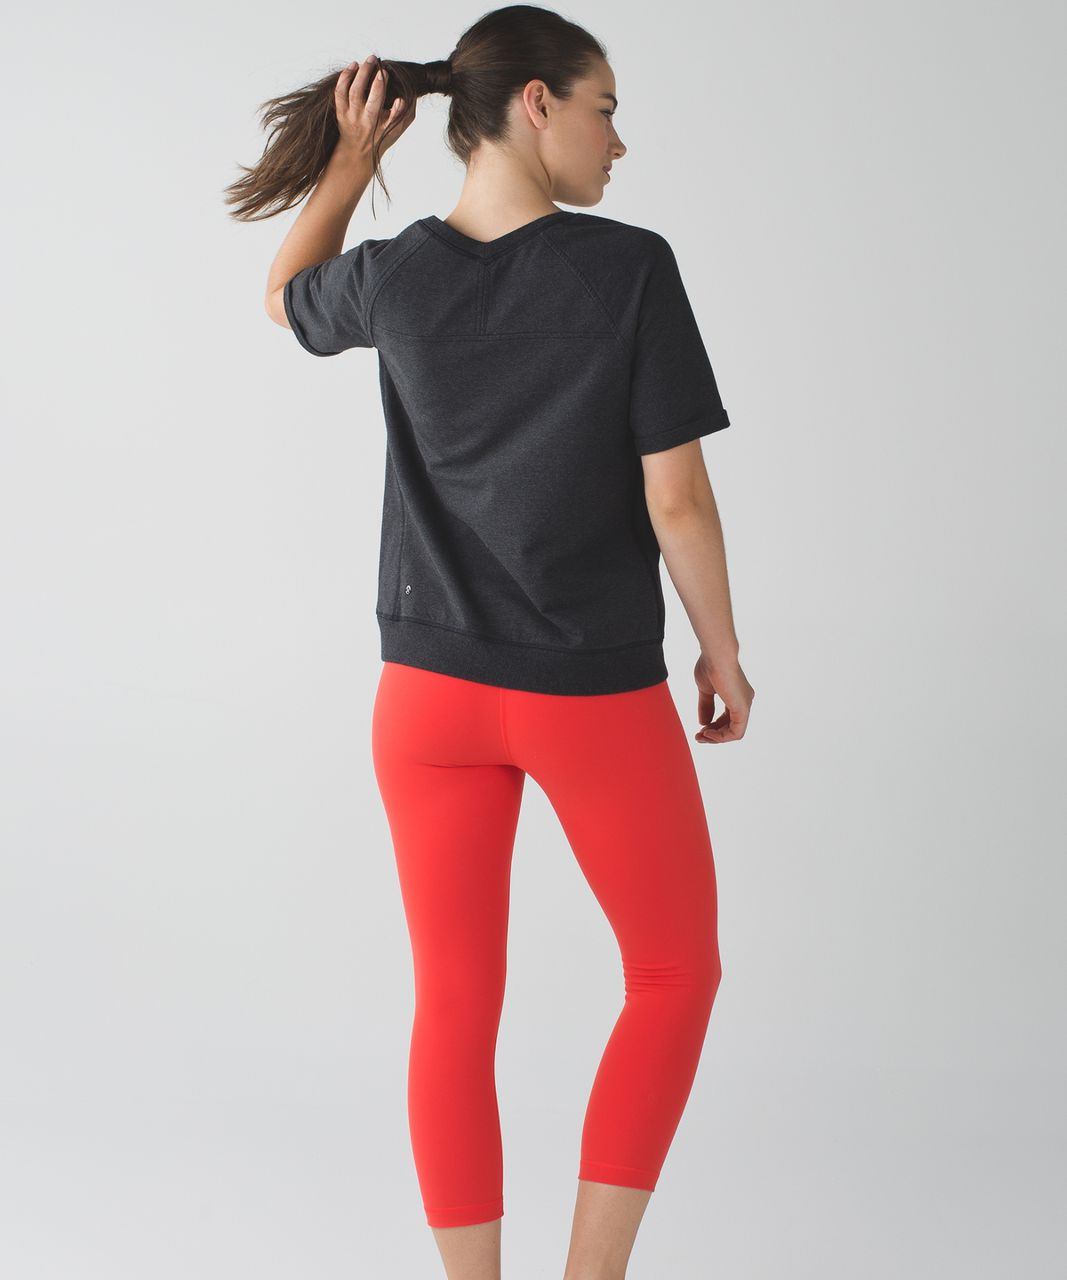 Lululemon Wunder Under Crop II *Full-On Luon - Alarming